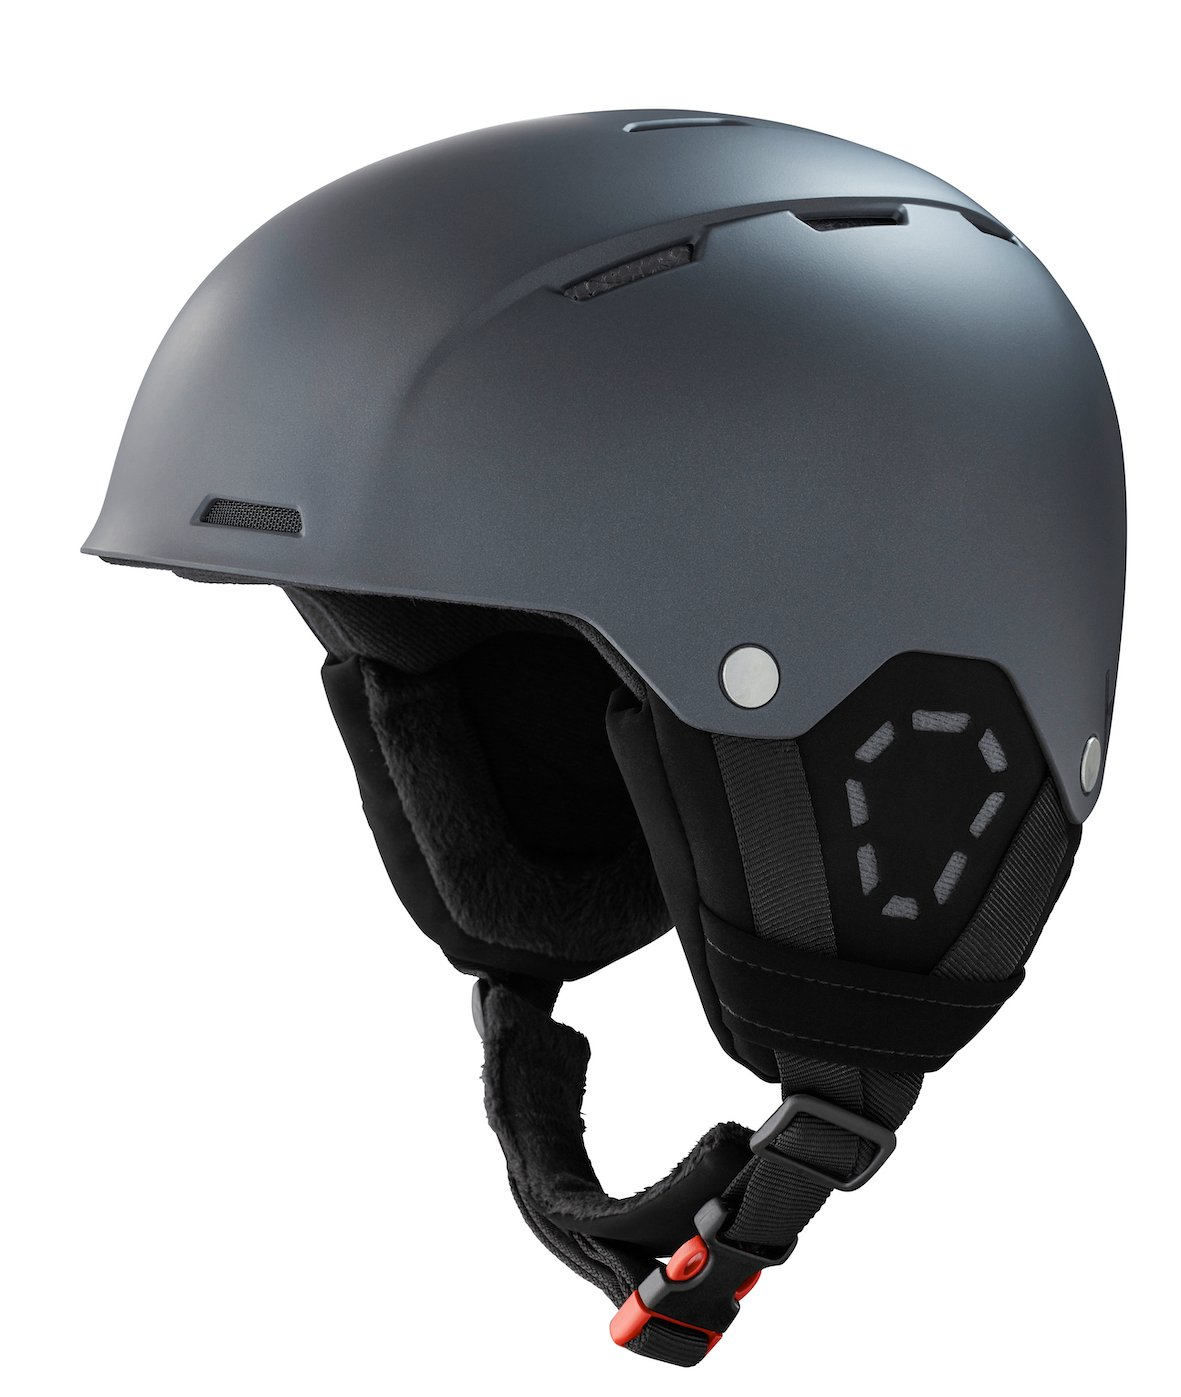 Head FW20/21 Snow Helmets